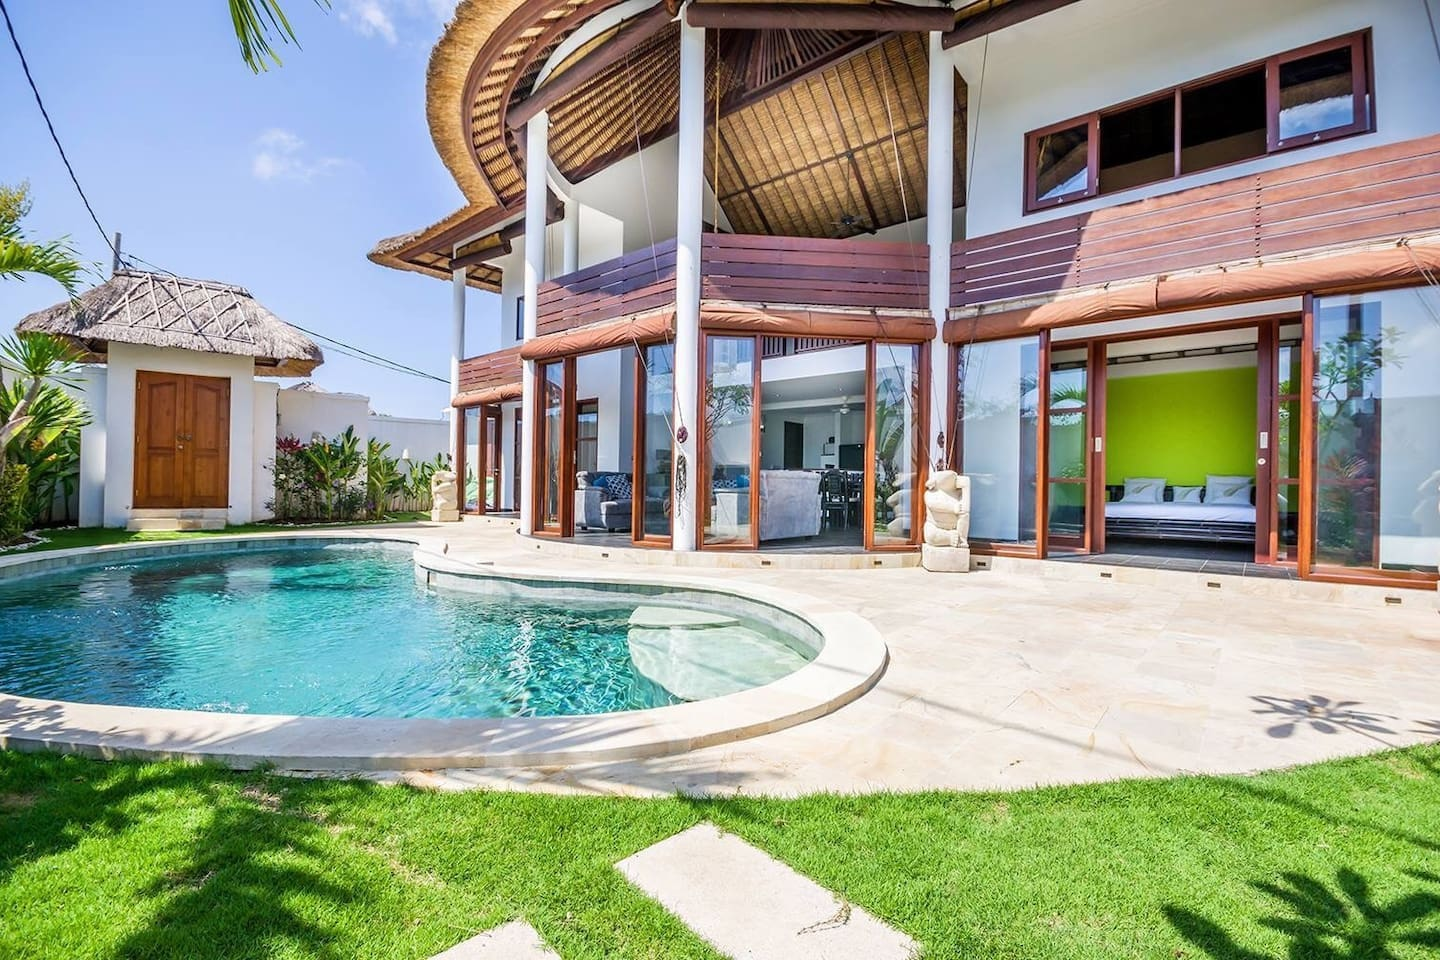 Private Pool and garden for your holidays - Sun beds x3 included (not showing in the photo). Direct garden access from 2 bedrooms and living room. Lush and tropical garden with beautiful pool.